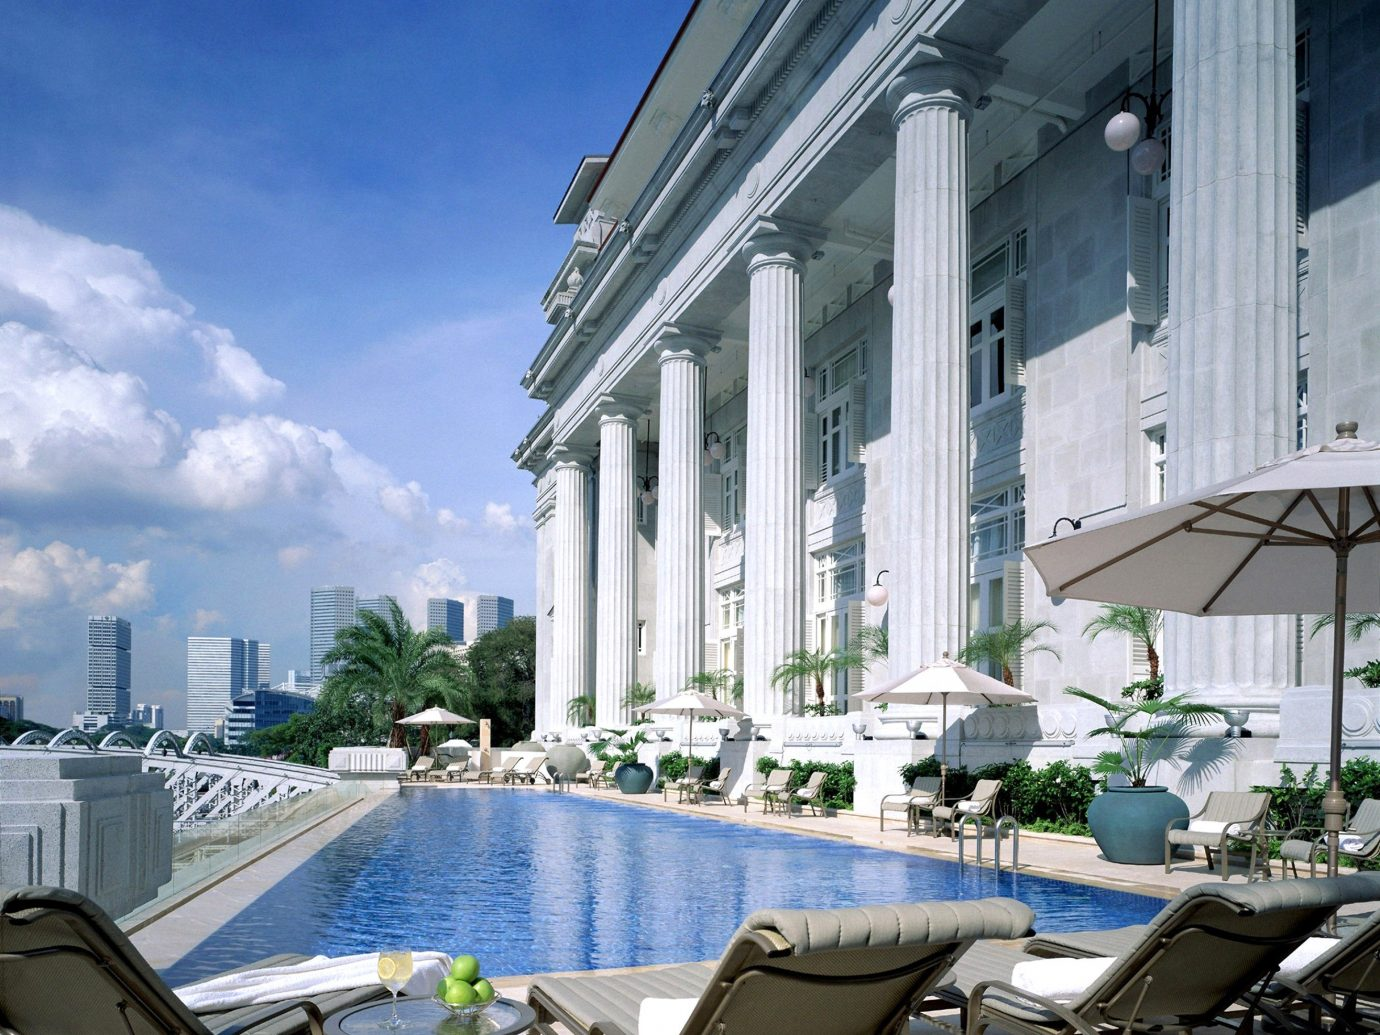 Hip Hotels Living Lounge Luxury Modern Pool building outdoor condominium Architecture vacation estate marina dock facade cityscape Resort apartment several